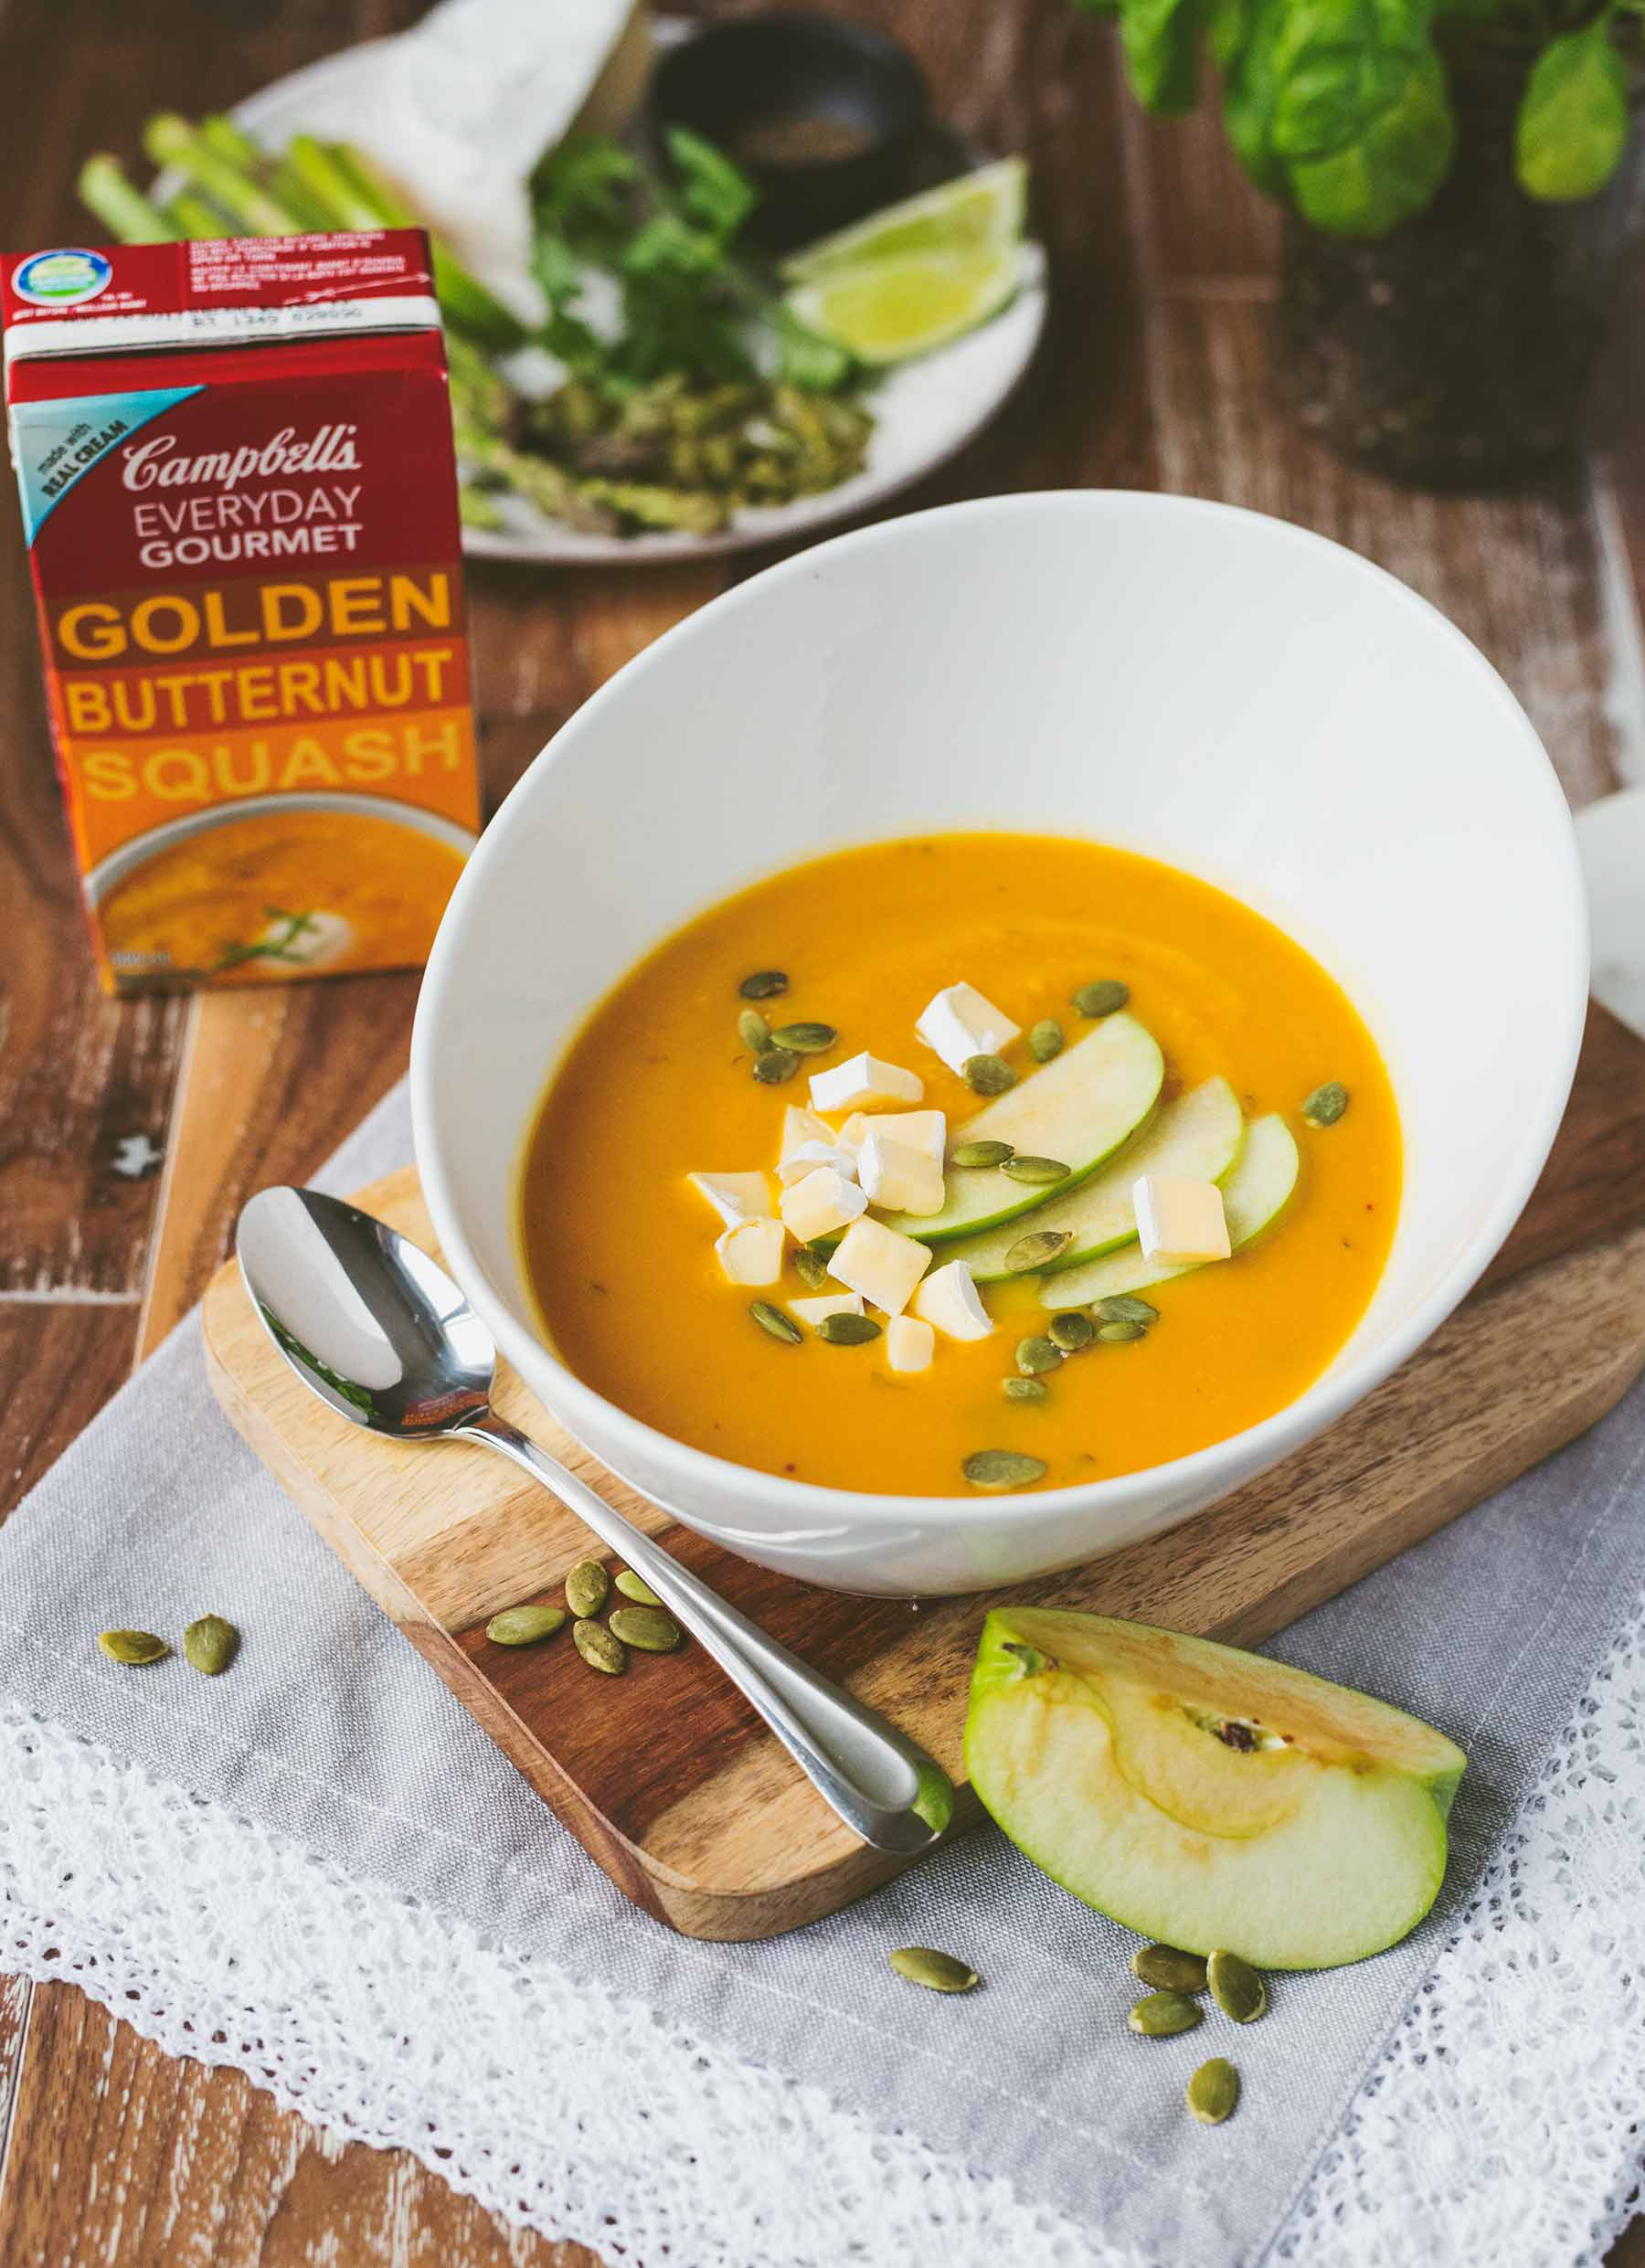 Campbell's Everyday Gourmet Golden Butternut Squash